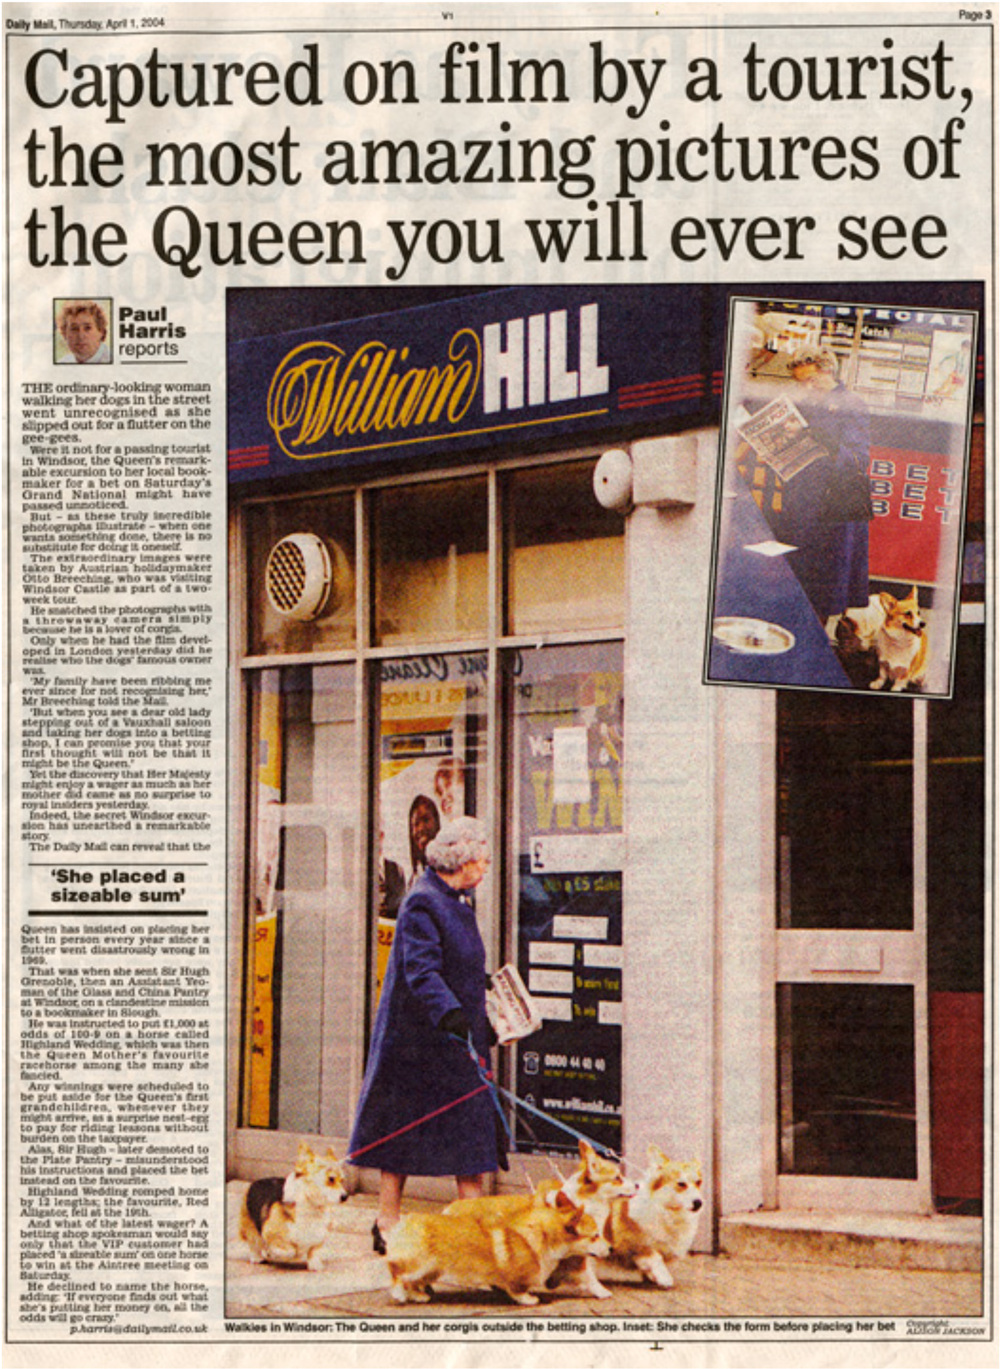 Press Queen William Hill.jpg